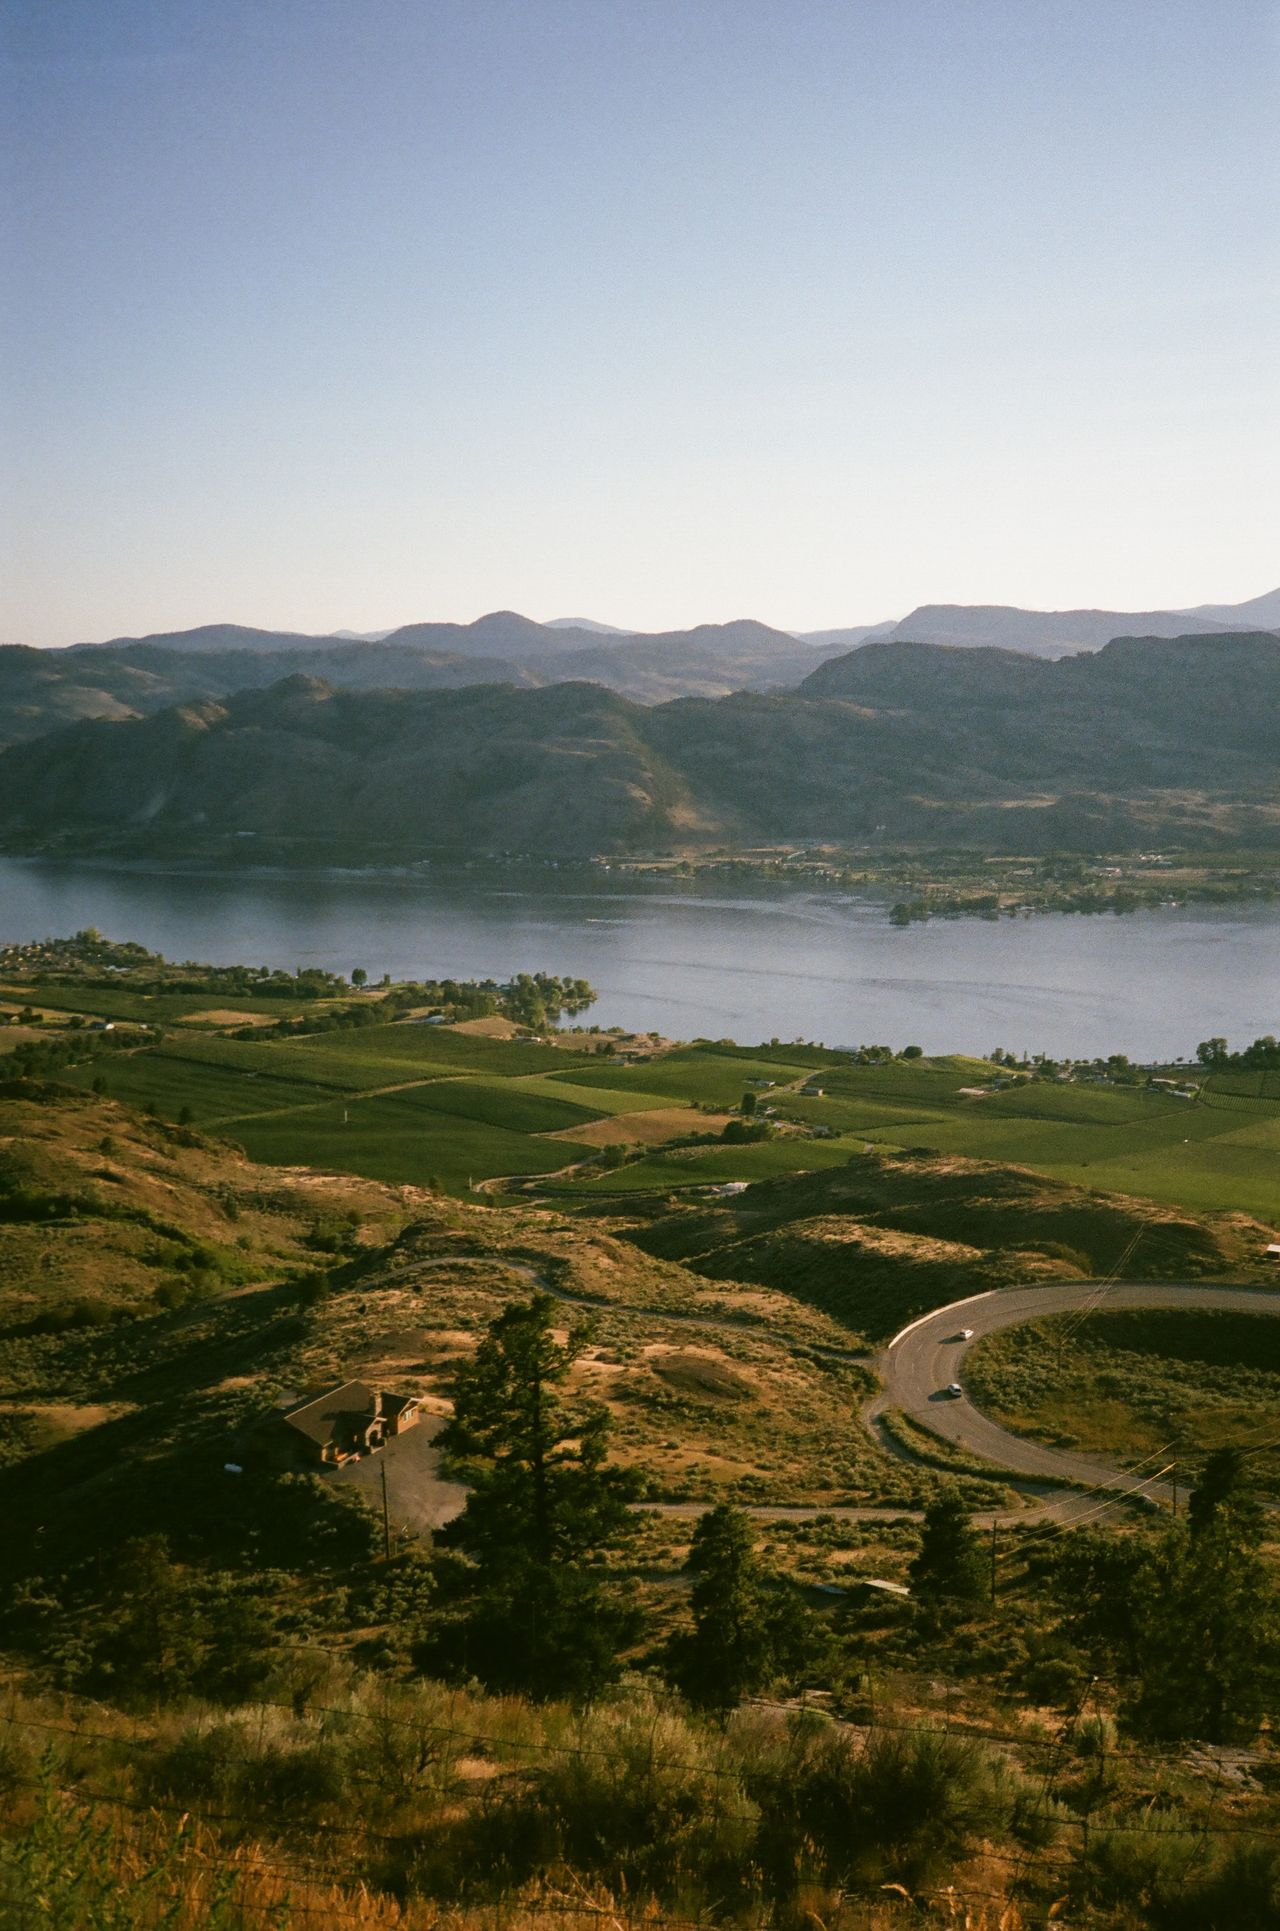 Agriculture Beautiful Landscape Beautiful Nature Beauty In Nature British Columbia Canada Clear Sky Countryside Cultivated Land Farm Lake Lake Side Lake View Landscape Majestic Mountain Mountain Range Nature Non-urban Scene Osoyoos Rural Scene Scenics Solitude Tranquil Scene Tranquility